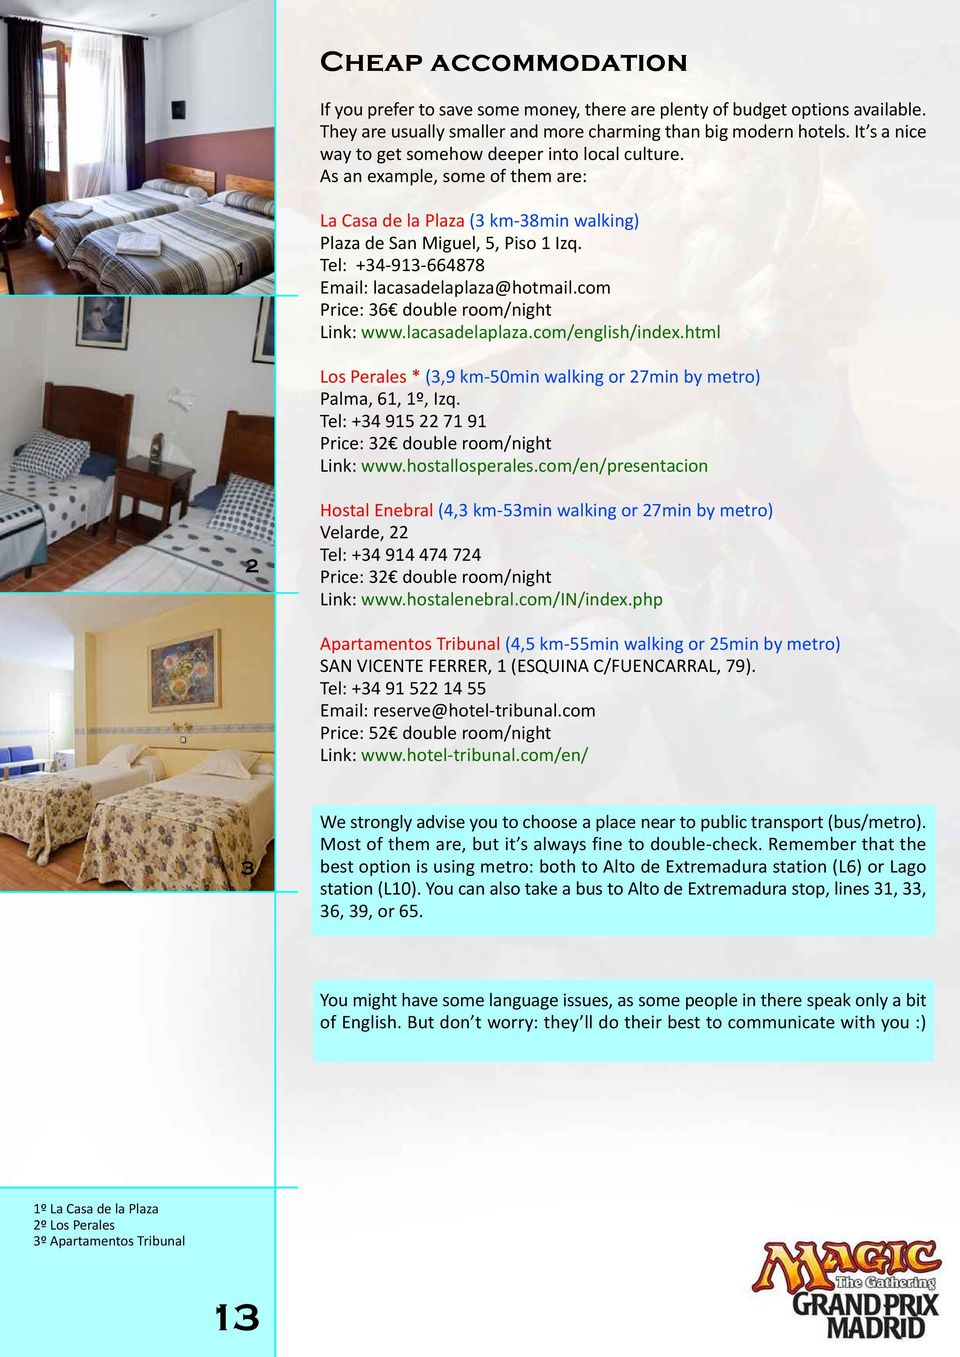 Tel: +34-93-664878 Email: lacasadelaplaza@hotmail.com Price: 36 double room/night Link: www.lacasadelaplaza.com/english/index.